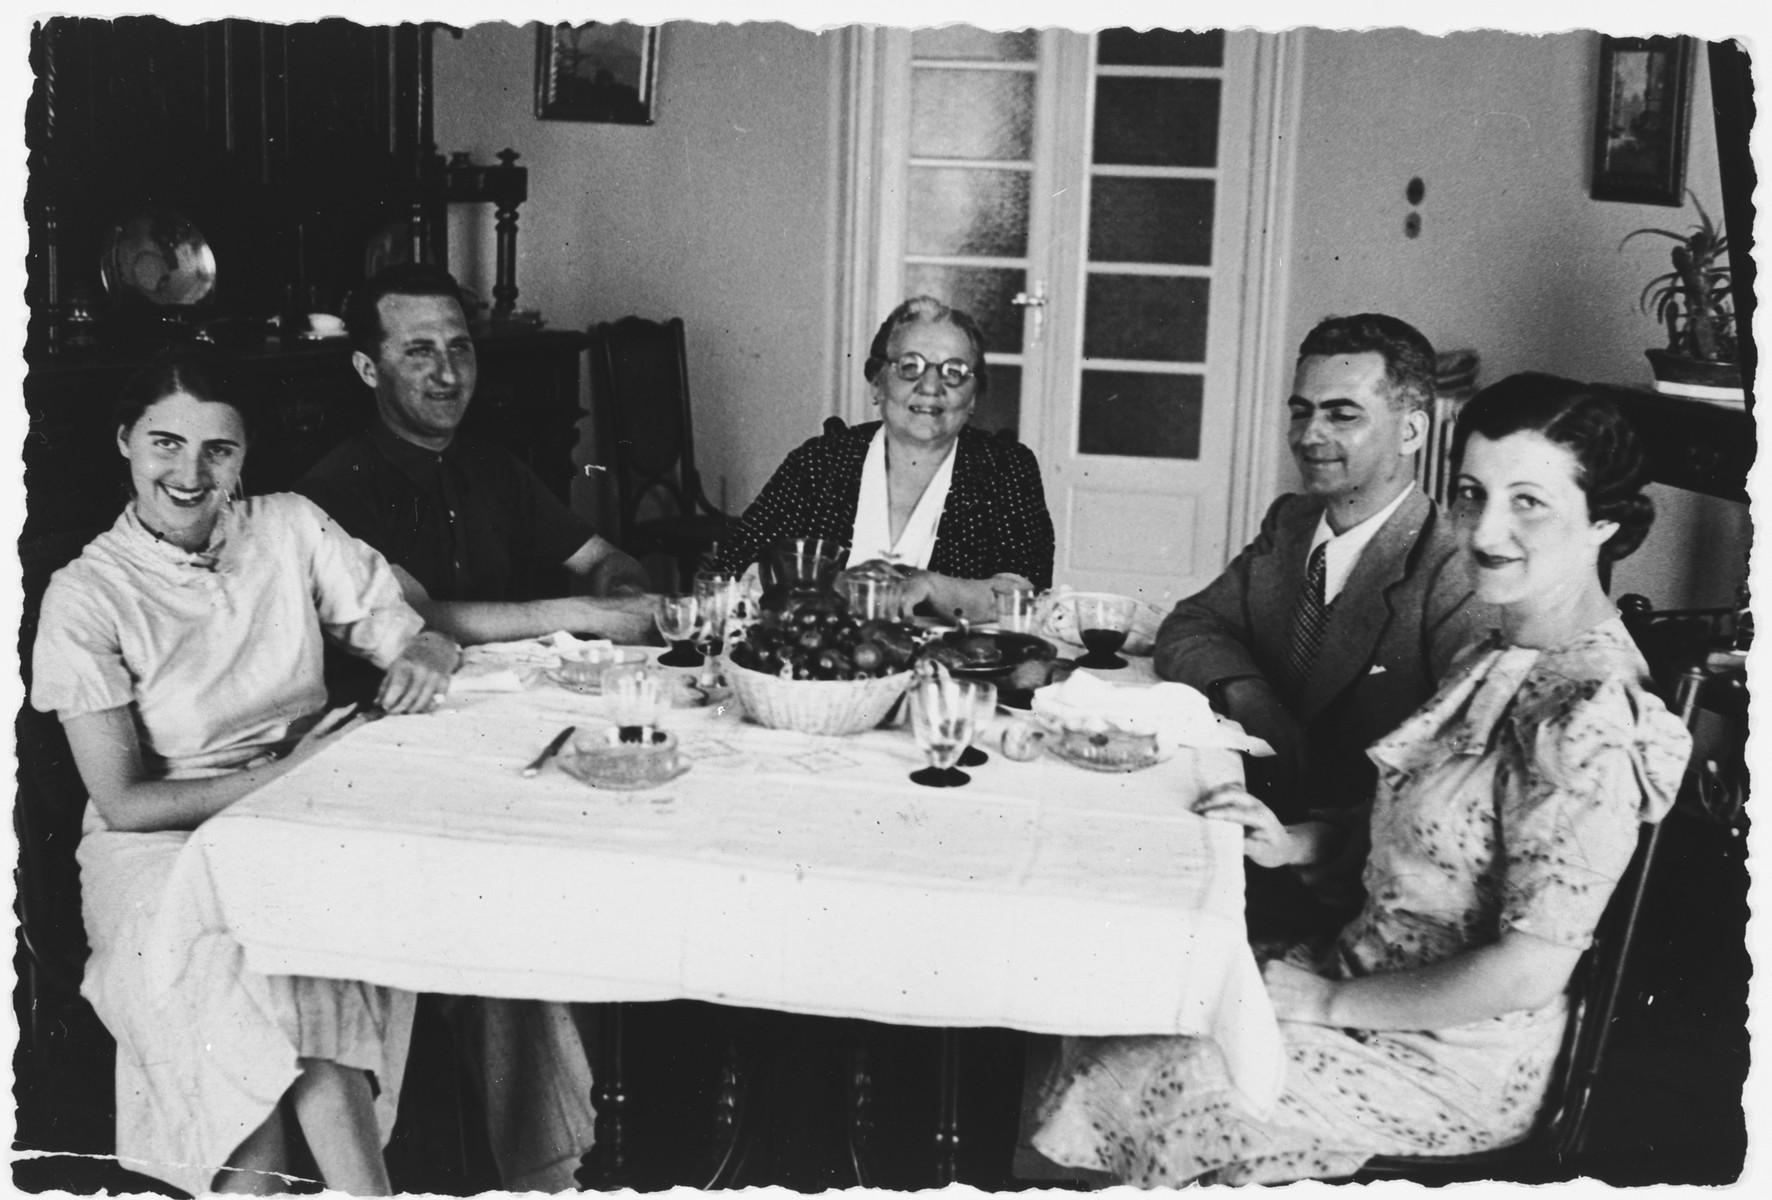 The Foa family gathers around the dinner table.  From left to right are Lisa and Bruno Foa, Grandmother Eleonora Foa, Joe Levi and his wife Marina Foa Levi.